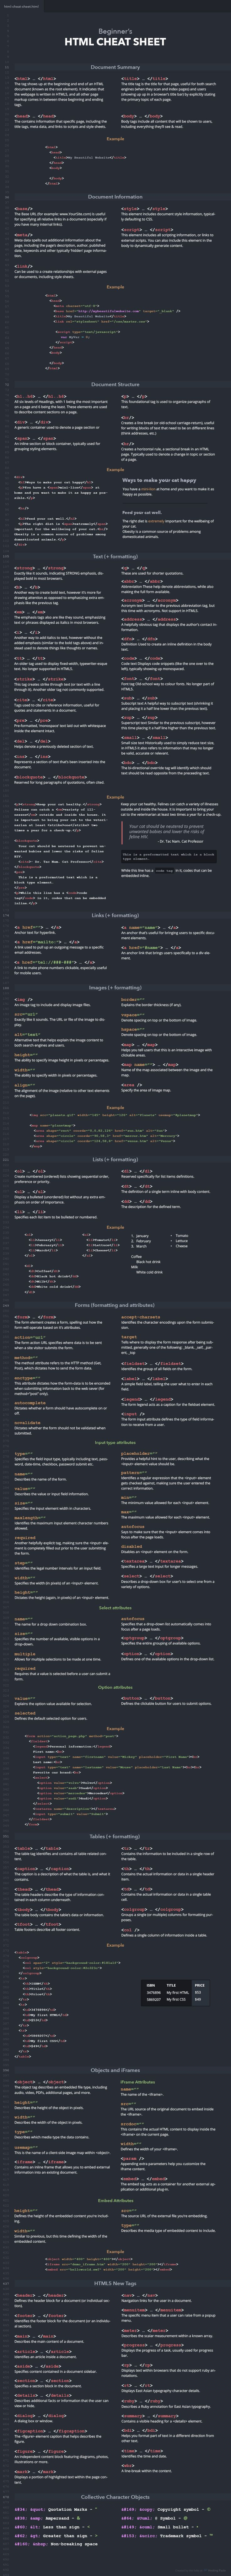 This HTML cheat sheet gives you a quick reference for commonly used tags